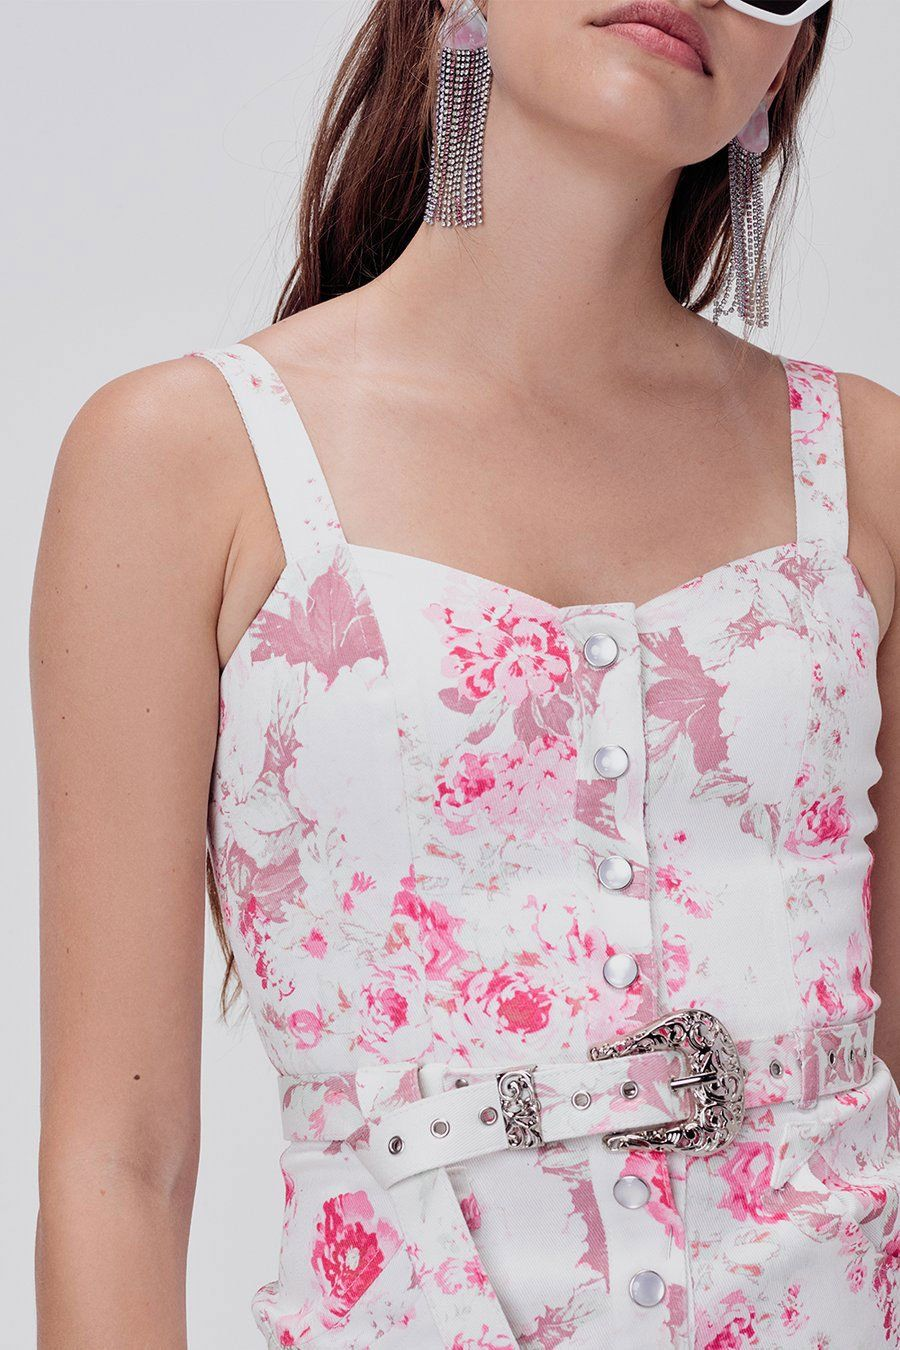 FOR LOVE & LEMONS | West Denim Mini Dress - Pink Floral